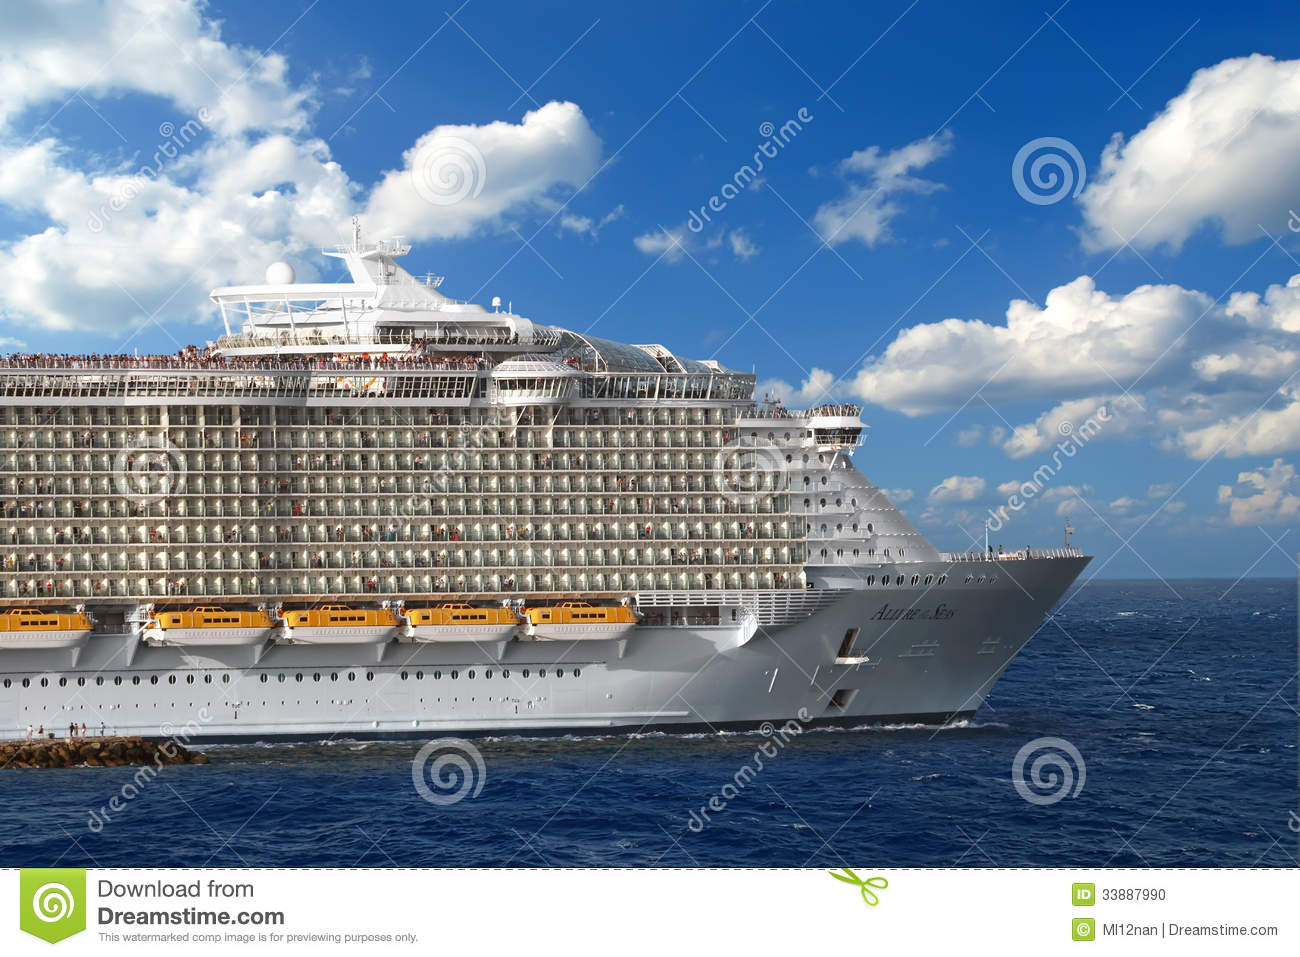 Cruise Ship Editorial Image  Image 33887990